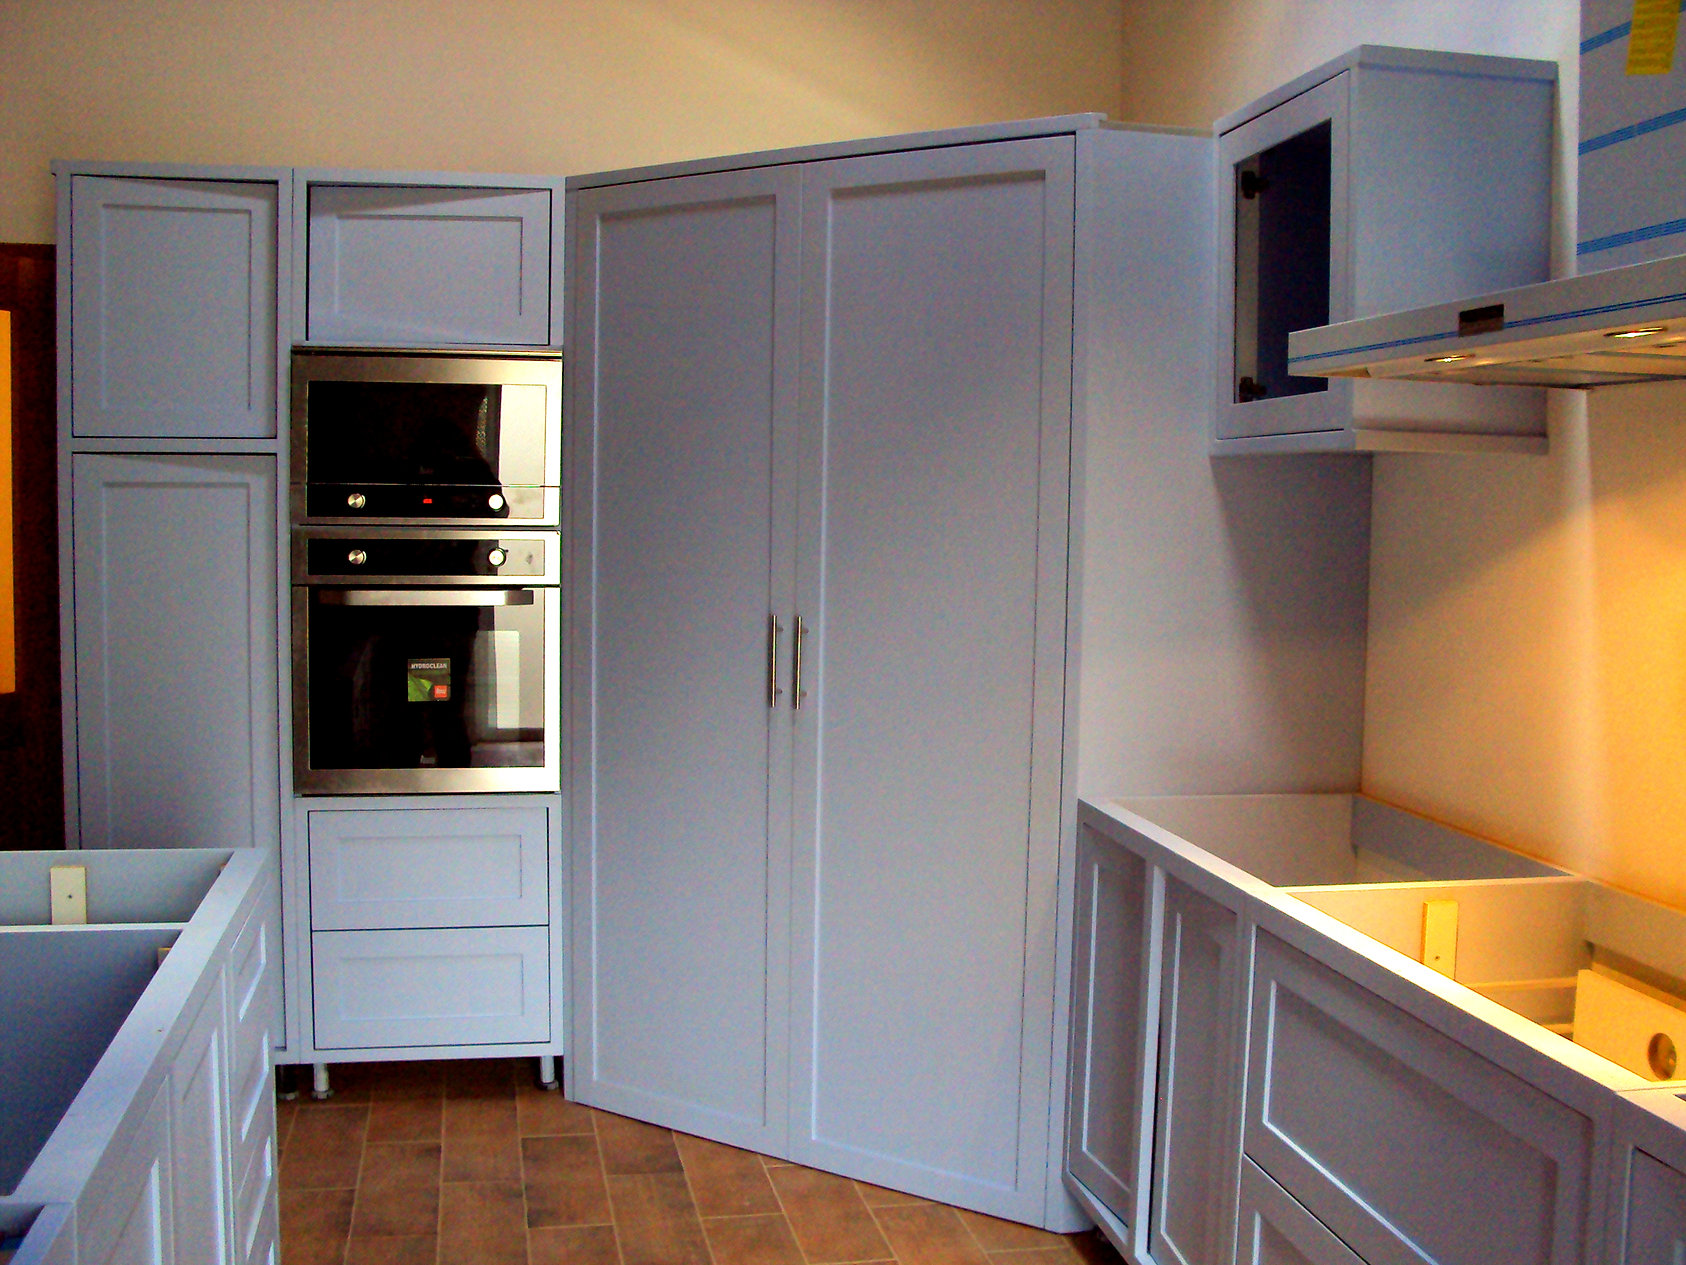 M³veis Selina Specialising in bespoke kitchens and furniture